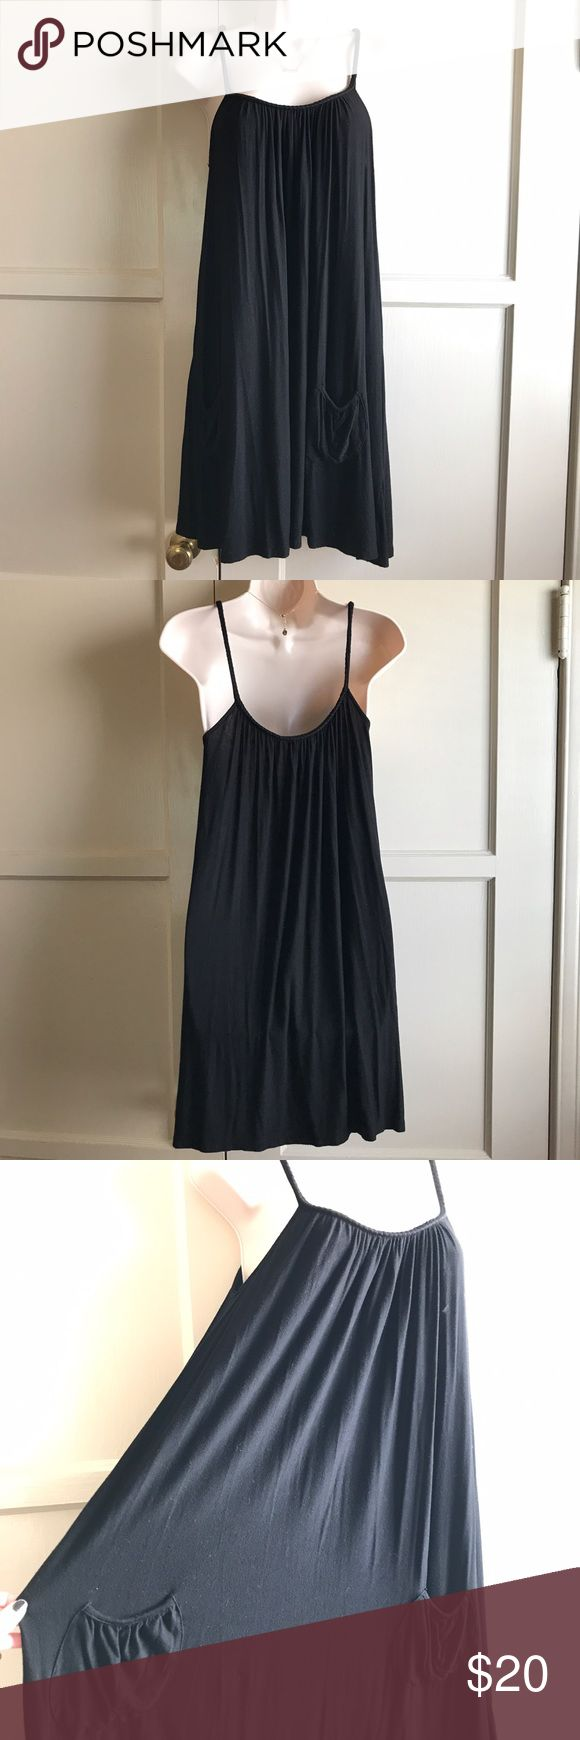 BCBGeneration oversized black tank dress Oversized black BCBG BCBGeneration dress WITH POCKETS.                                                                                        Measurements: Bust (armpit to armpit, laying flat) 17 in. Length - 35in. BCBG Dresses Midi